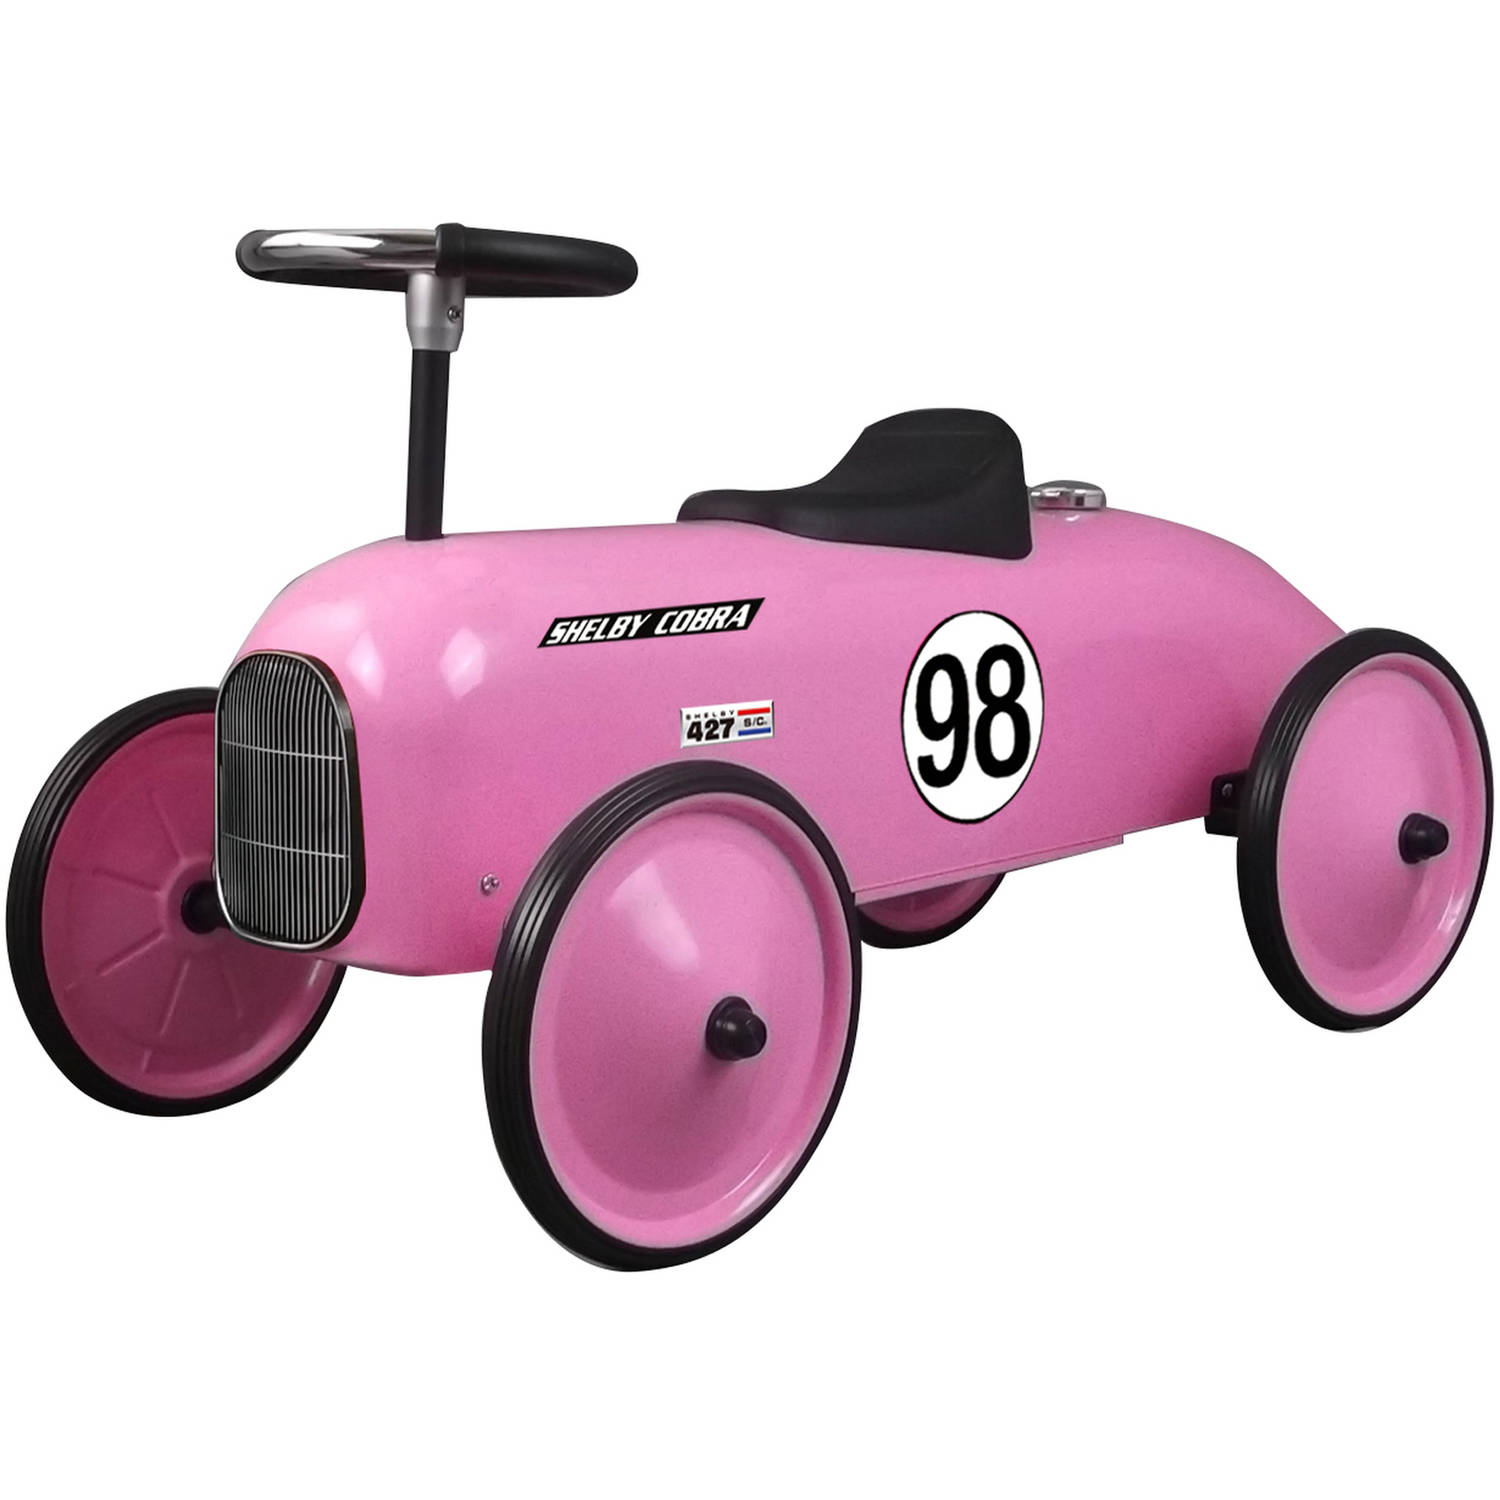 Shelby Cobra Stamped Steel Metal Racer Foot To Floor Ride On Ca, Pink